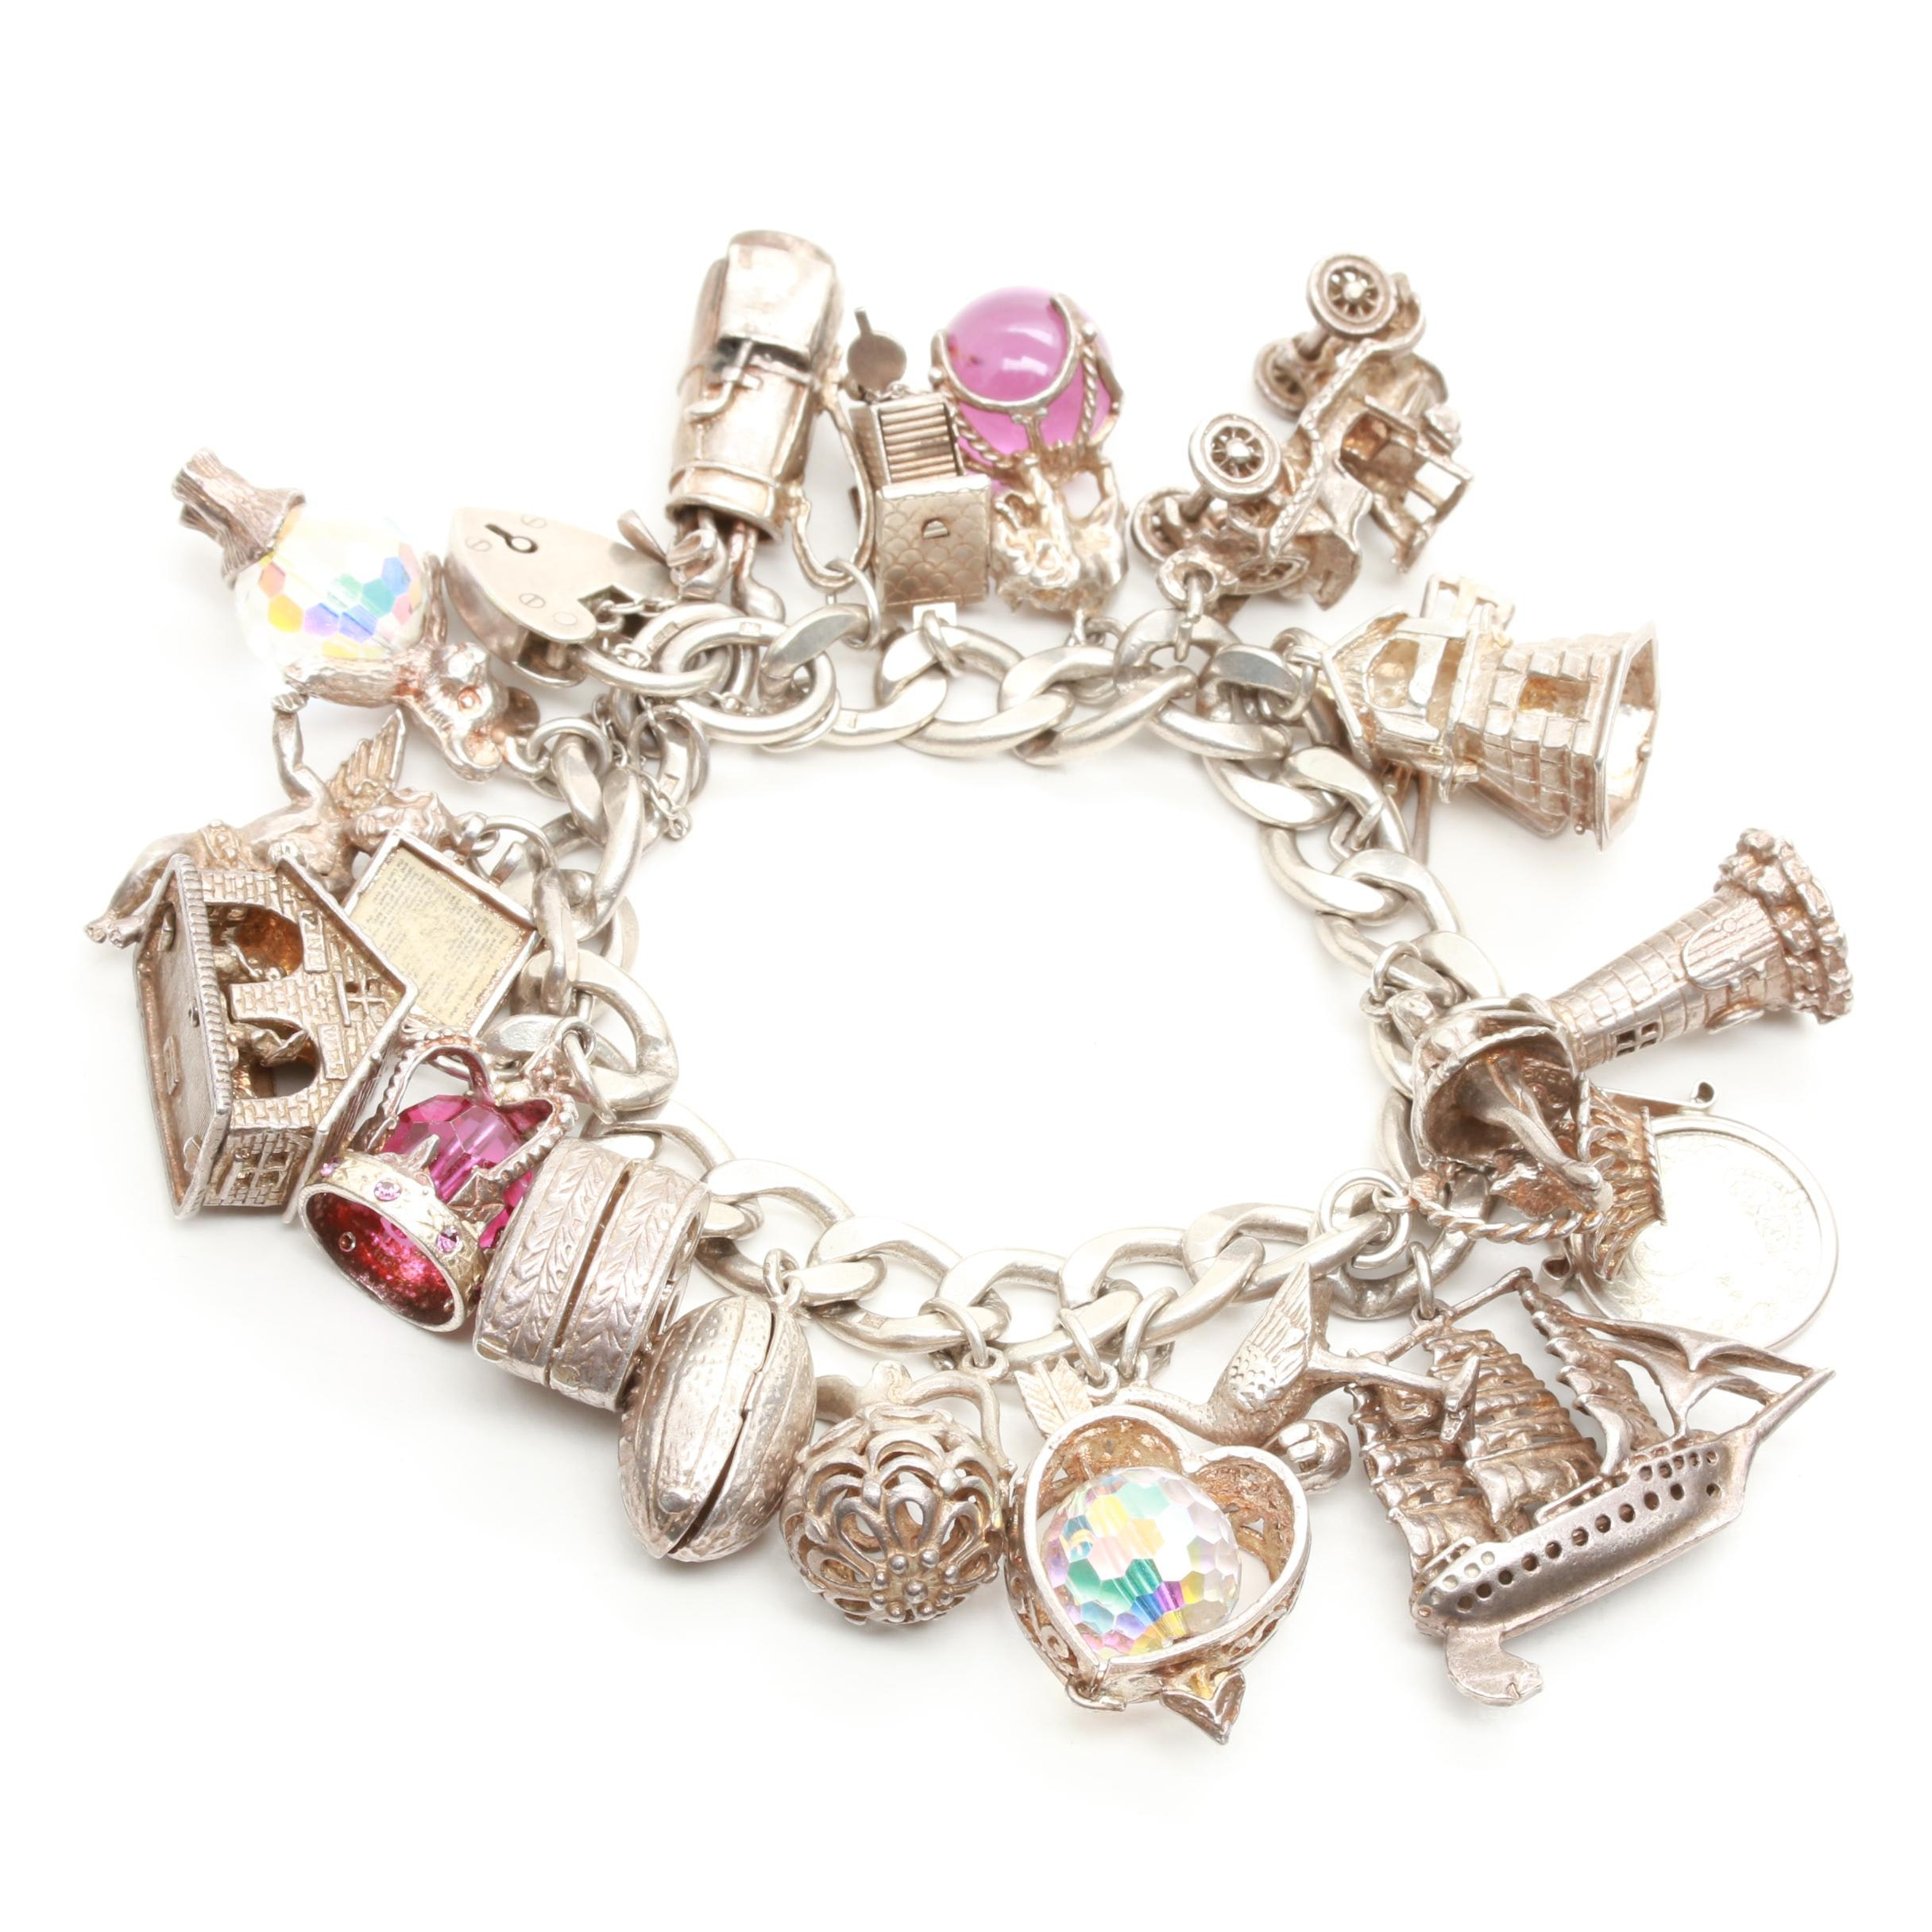 Sterling Silver Charm Bracelet Including Glass